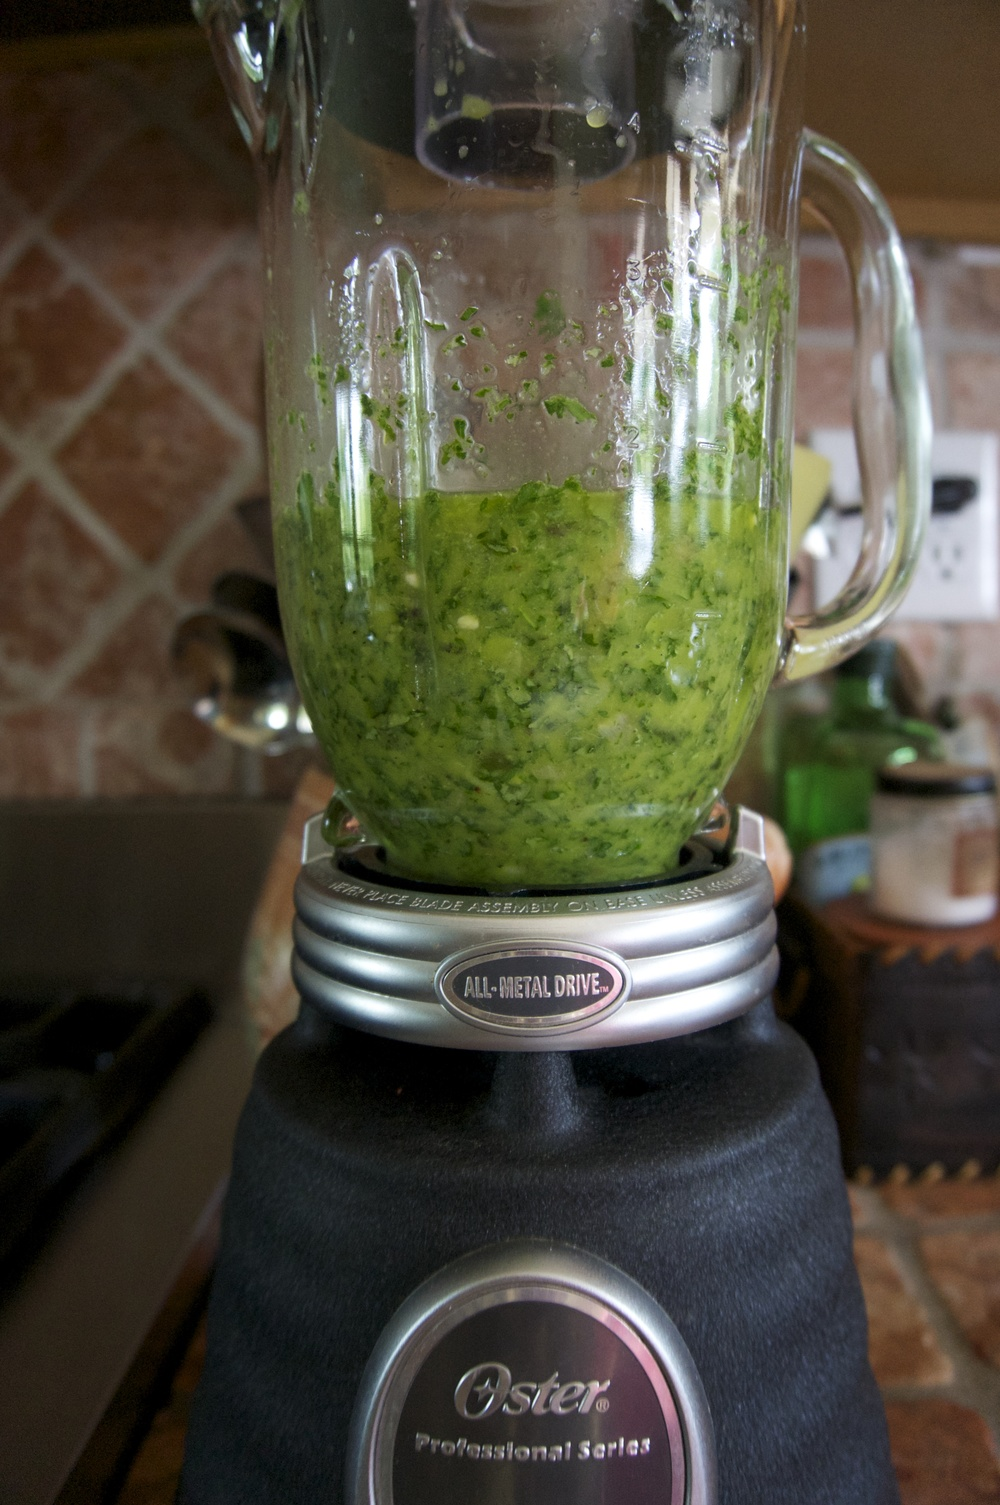 A quick spin in the blender is all it takes!